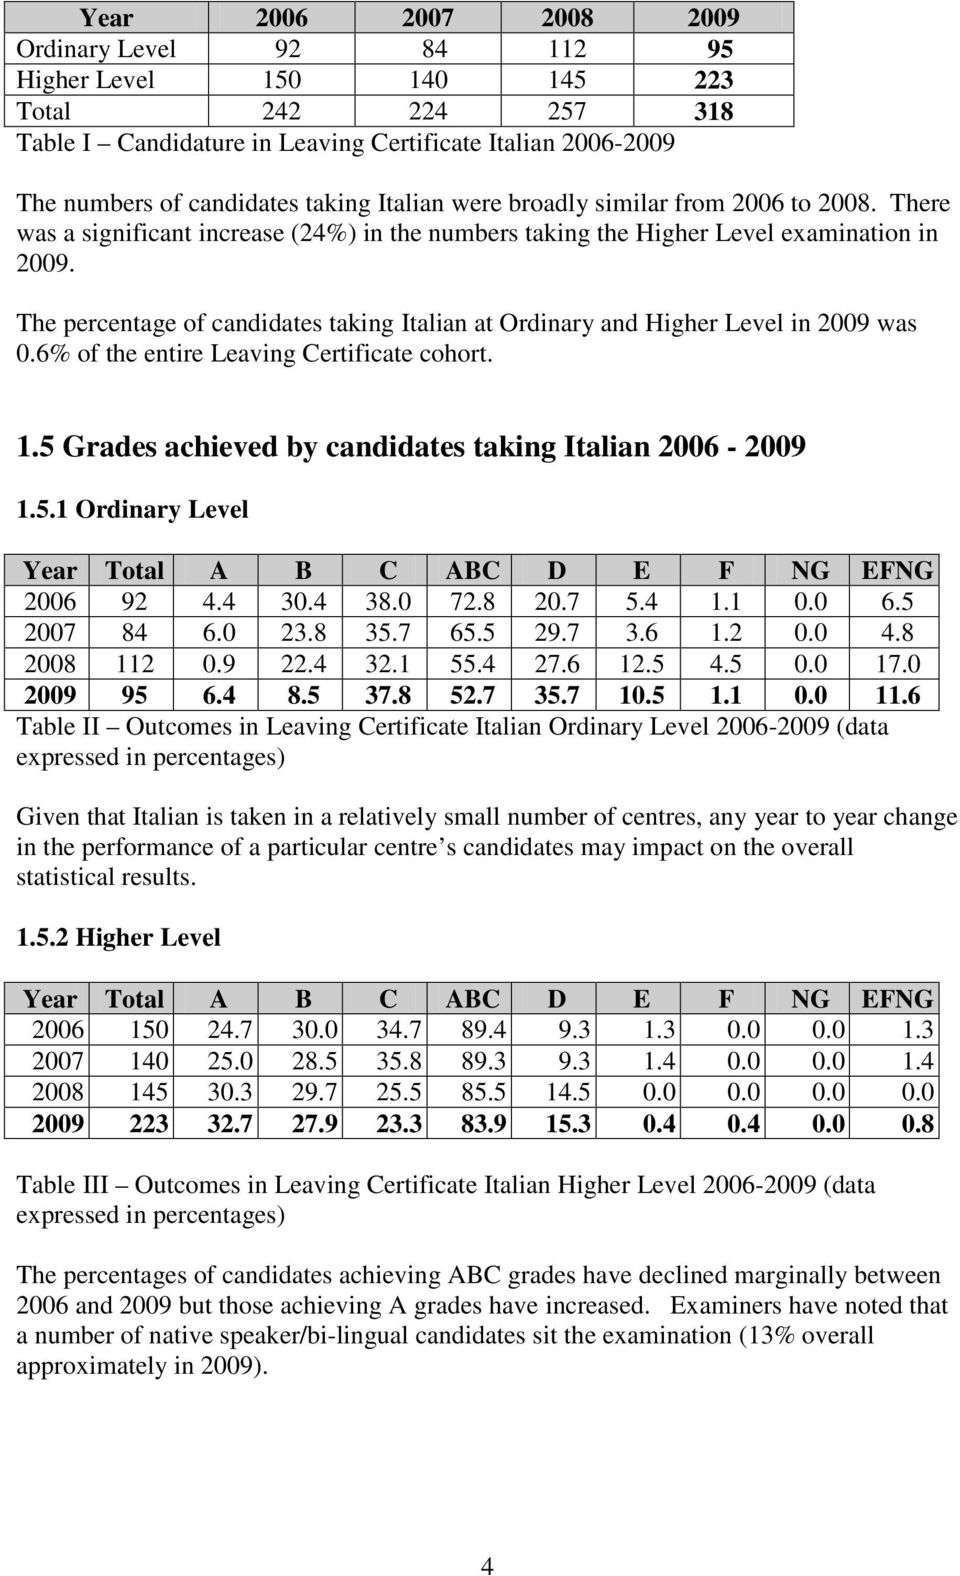 The percentage of candidates taking Italian at Ordinary and Higher Level in 2009 was 0.6% of the entire Leaving Certificate cohort. 1.5 Grades achieved by candidates taking Italian 2006-2009 1.5.1 Ordinary Level Year Total A B C ABC D E F NG EFNG 2006 92 4.